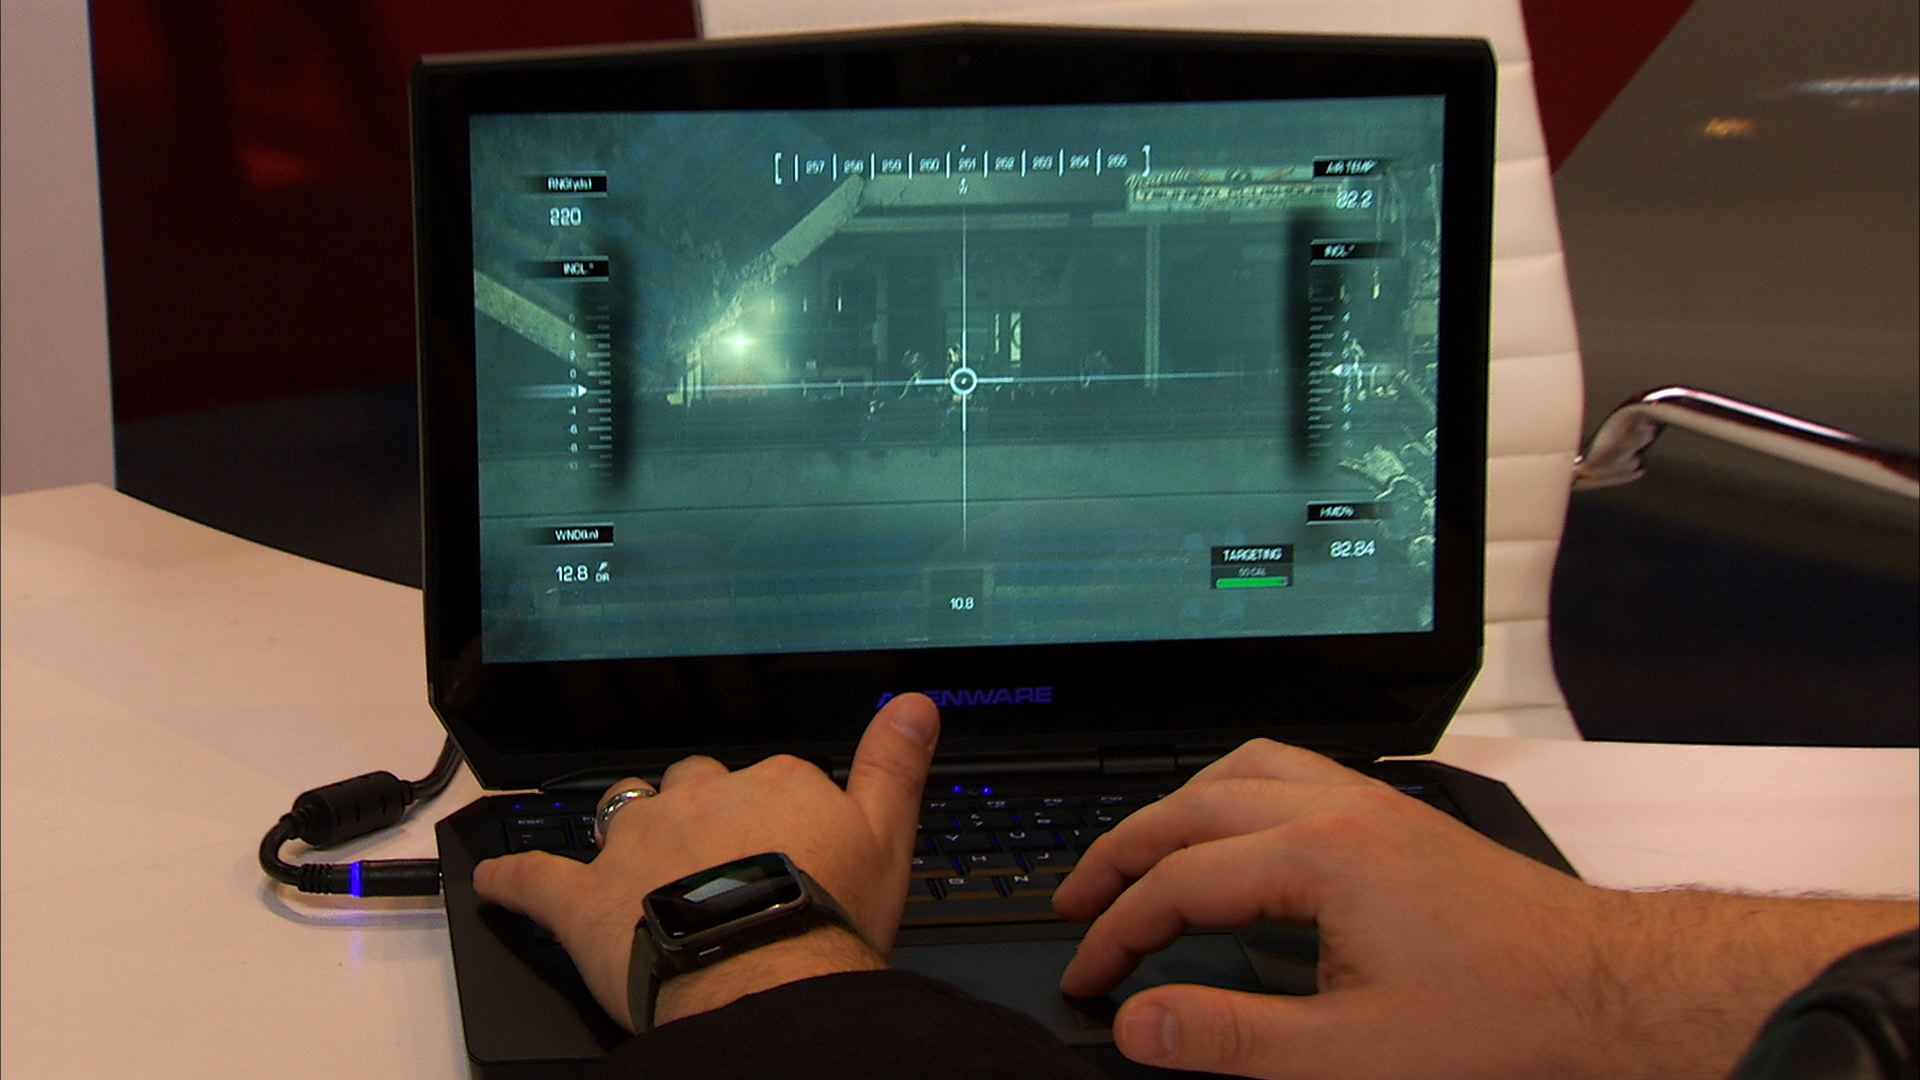 Video: Feast your eyes on this gaming laptop's new OLED screen